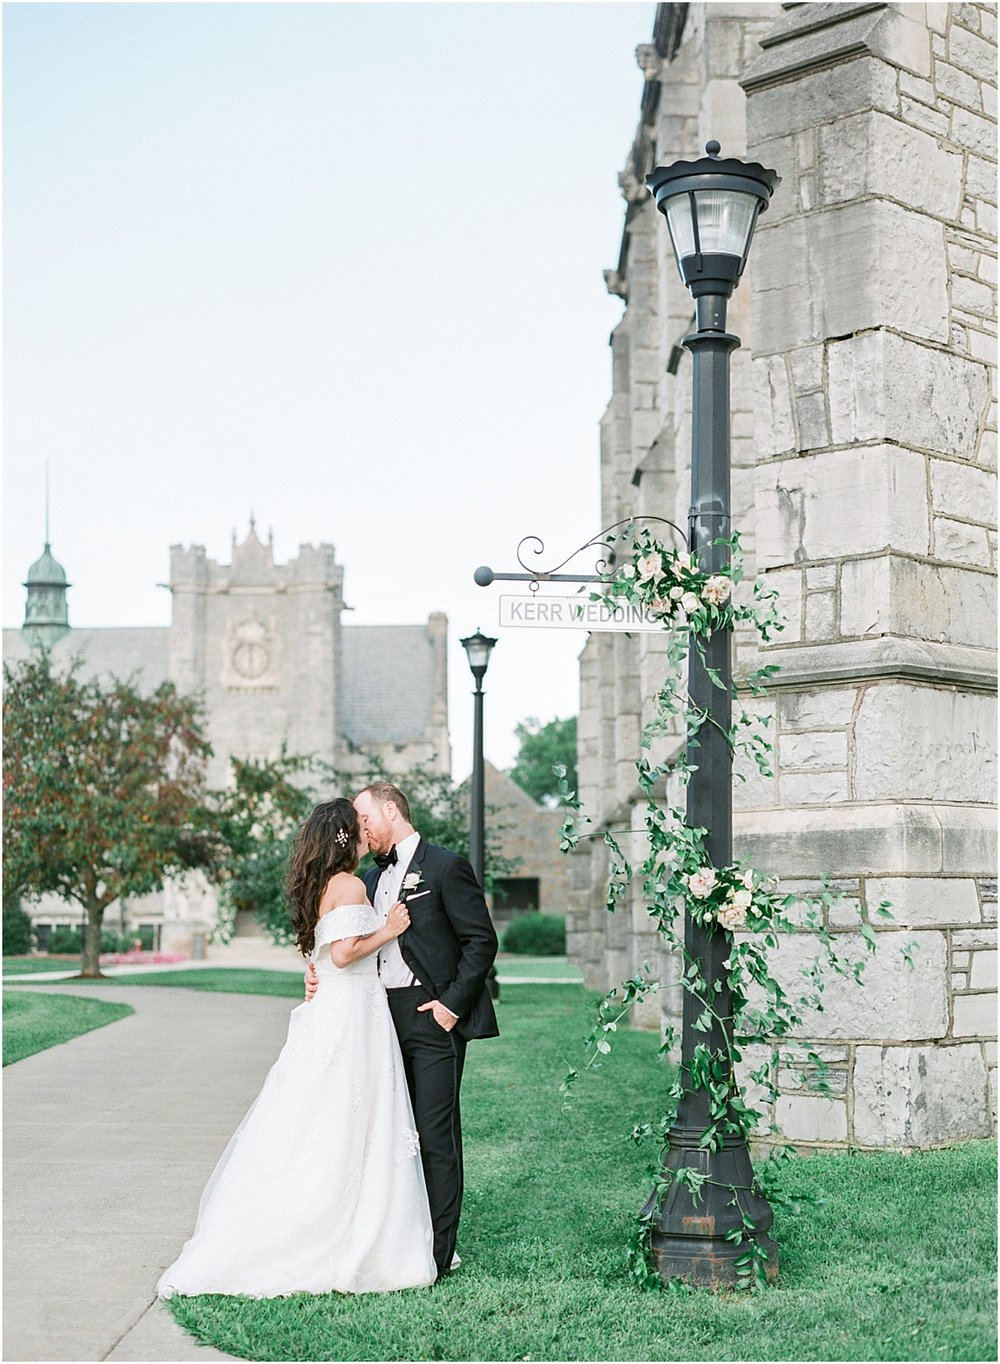 our_wedding_day_troy_NY_emma_willard_fairy_tale_royal_neutral_beauty_and_the_beast_moped_private_estate_cape_cod_boston_wedding_photographer_meredith_jane_photography_chris_kerr_photo_1989.jpg